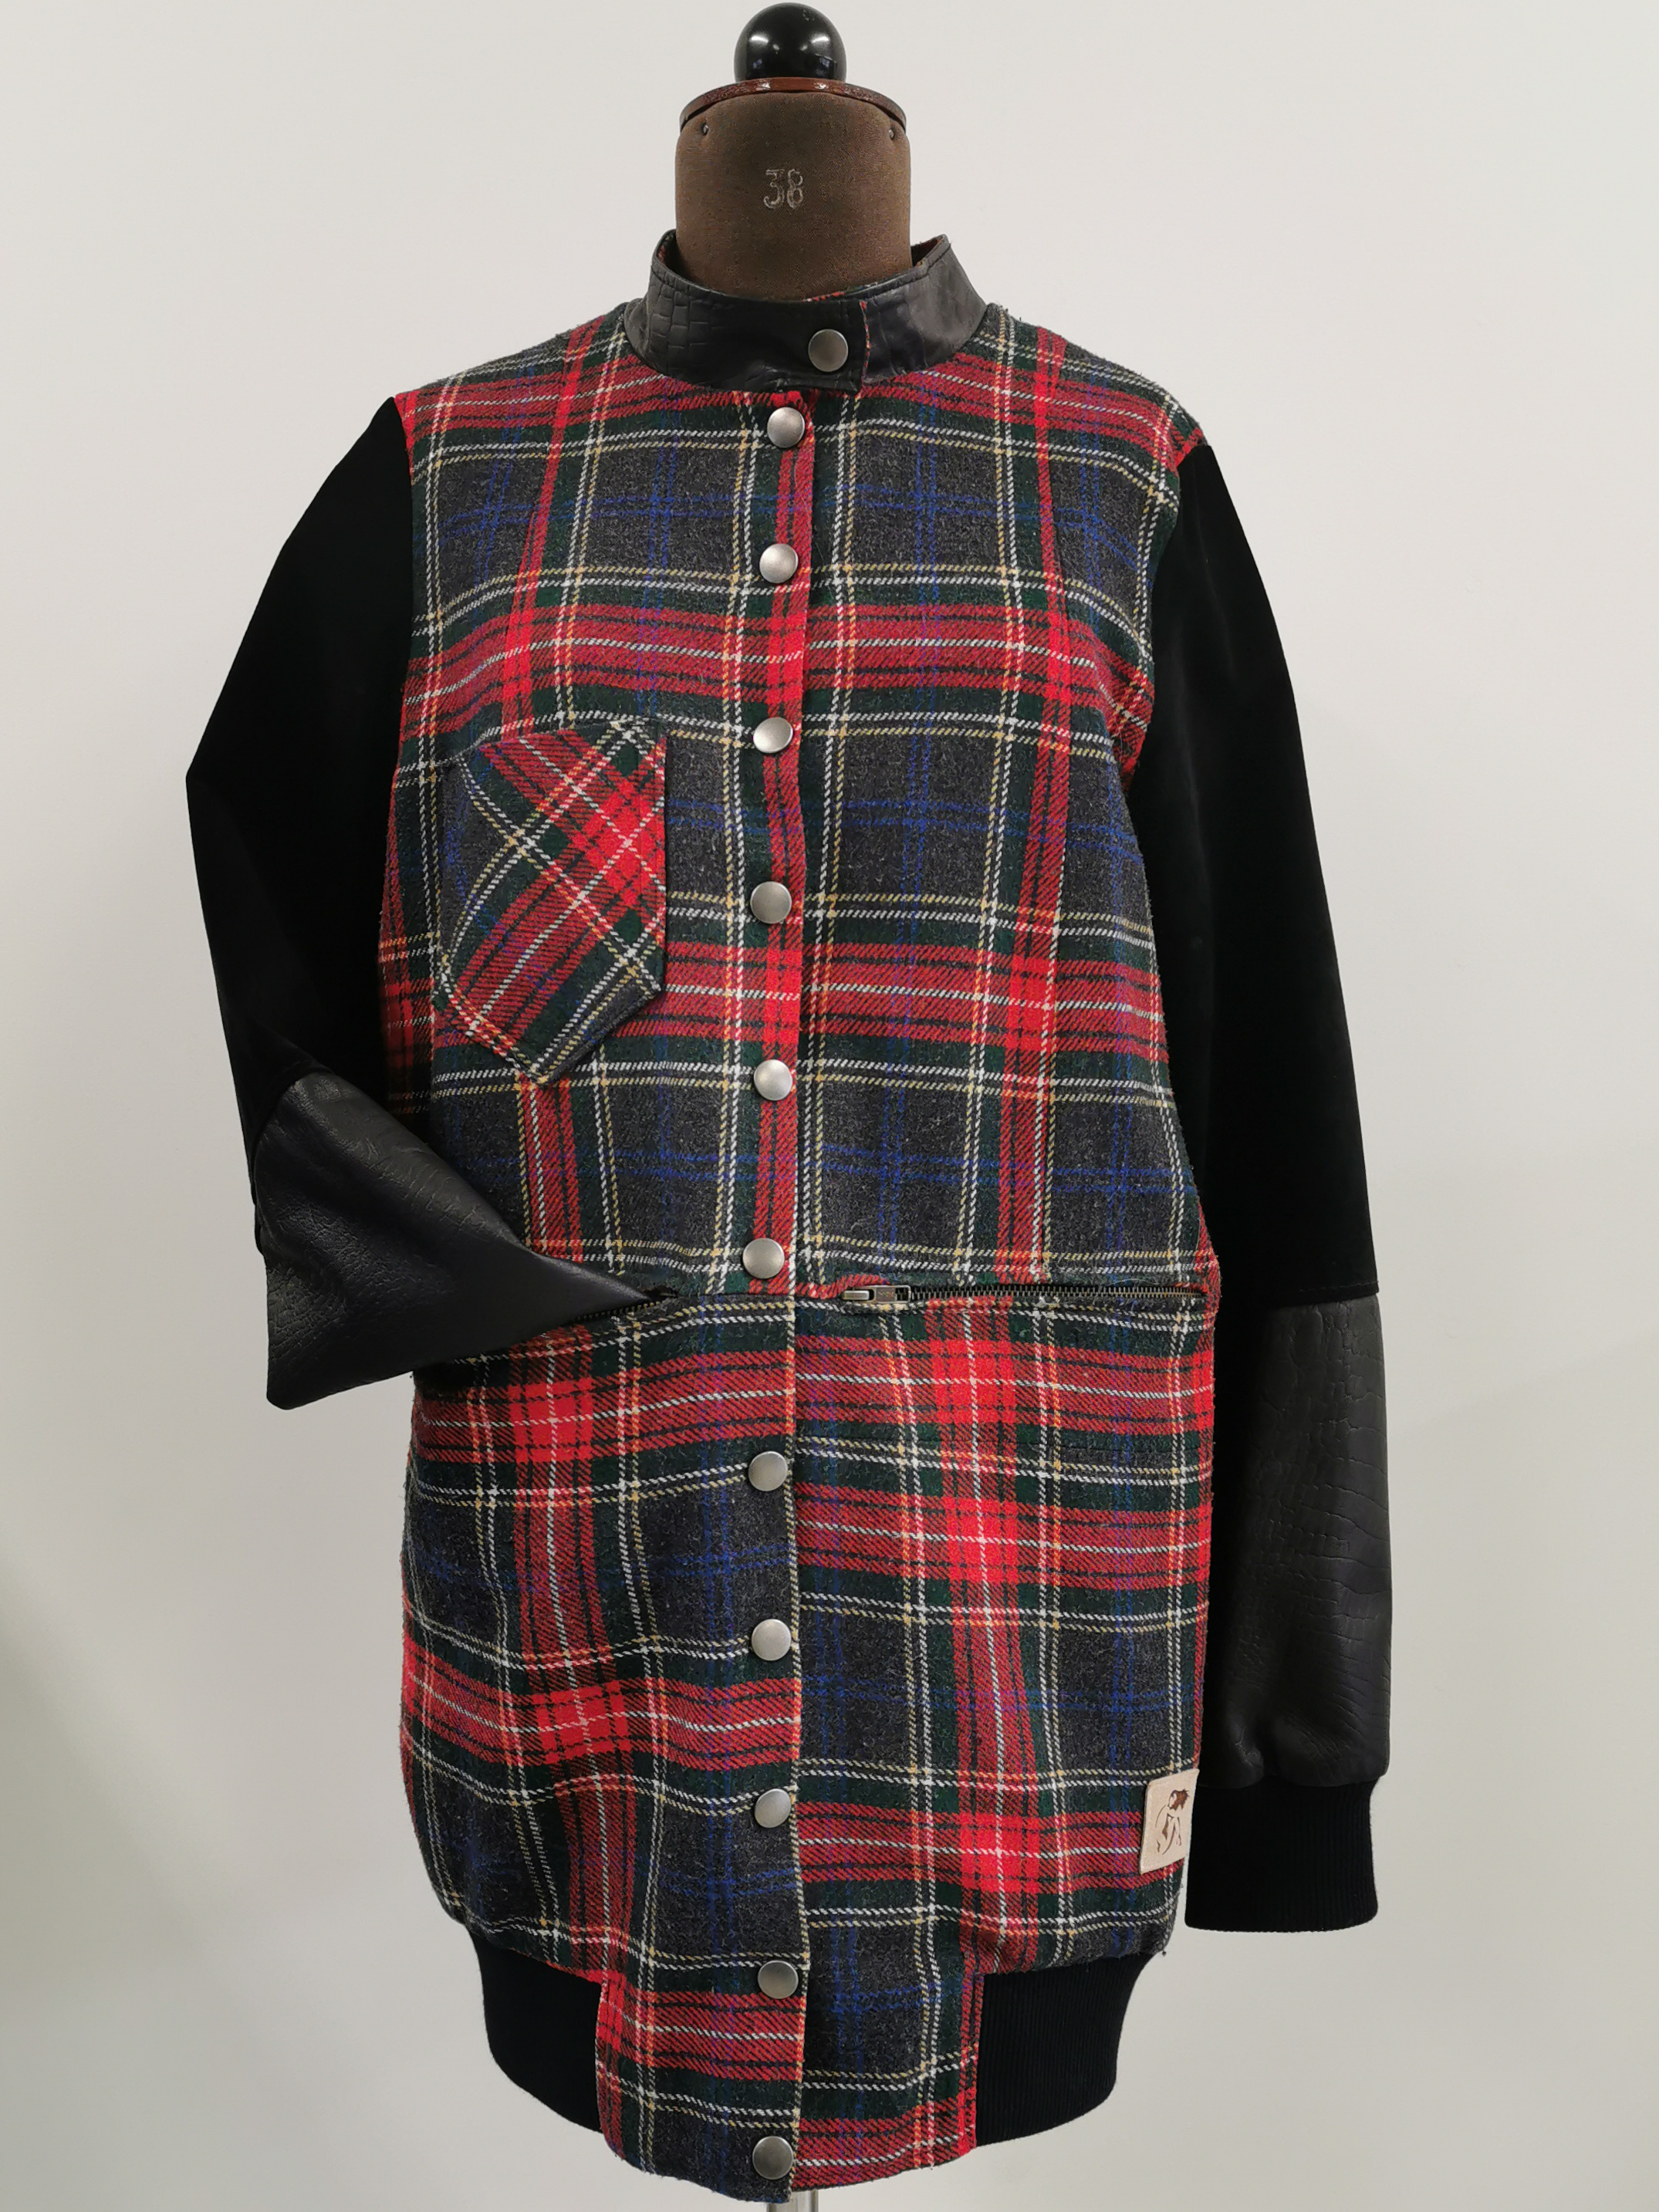 Checked leahther jacket